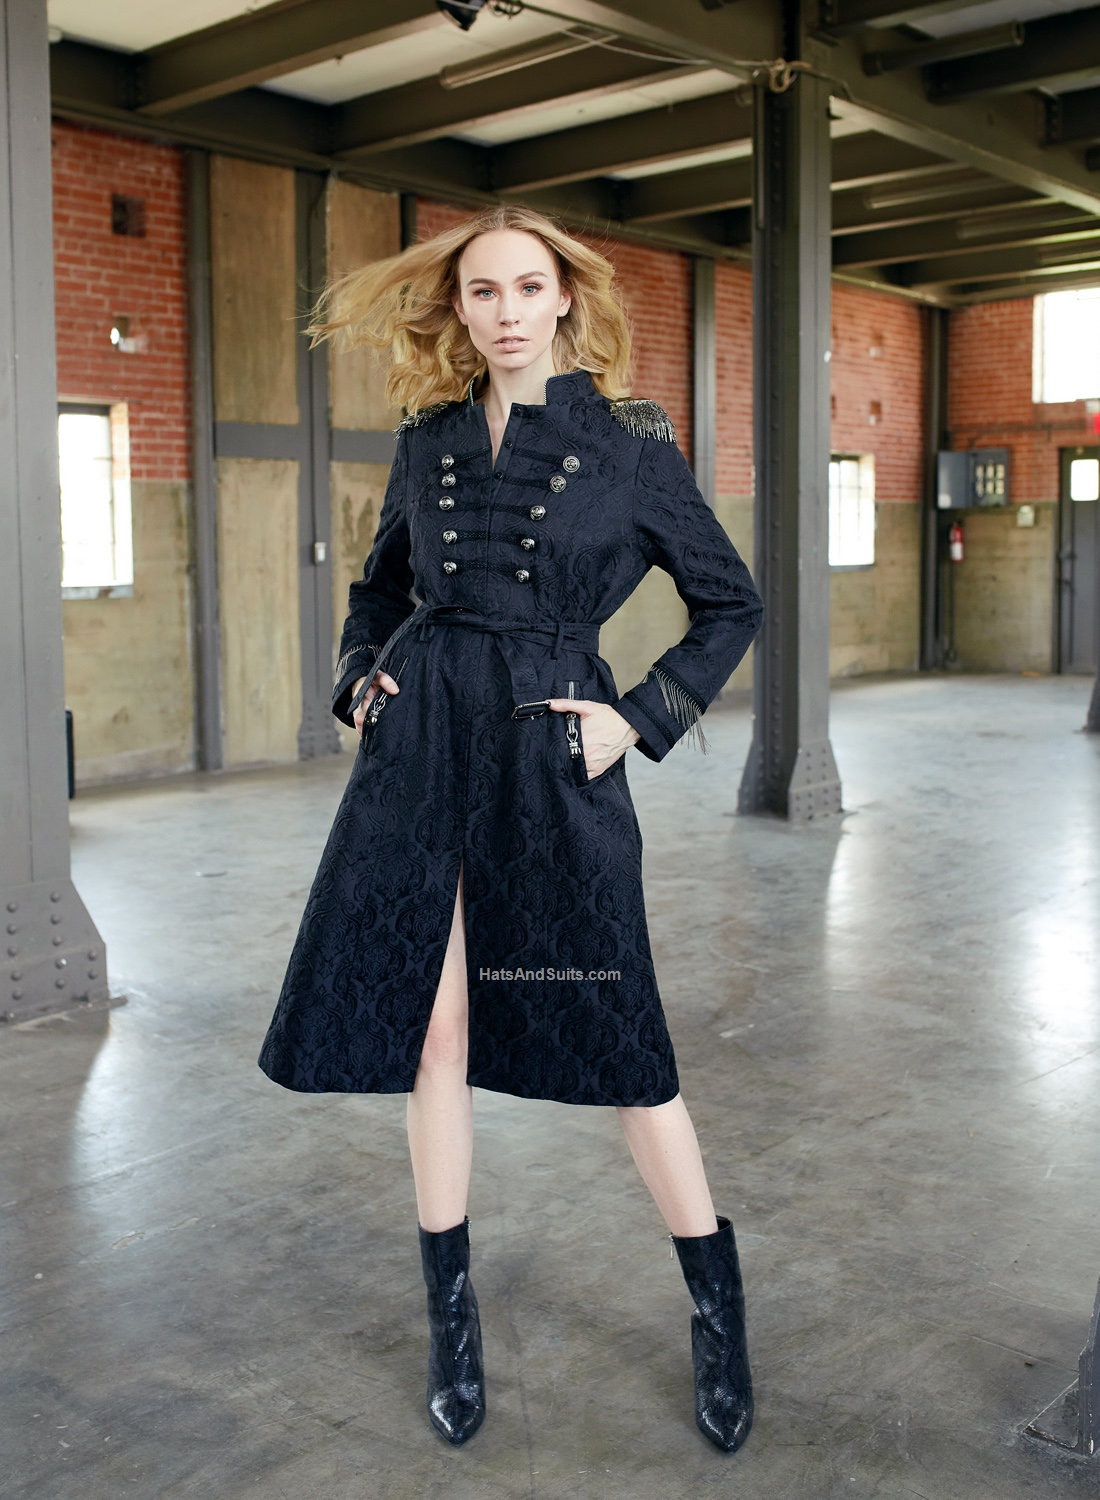 JUST VINCI #16010, Limited Edition Coat Dress. FH19